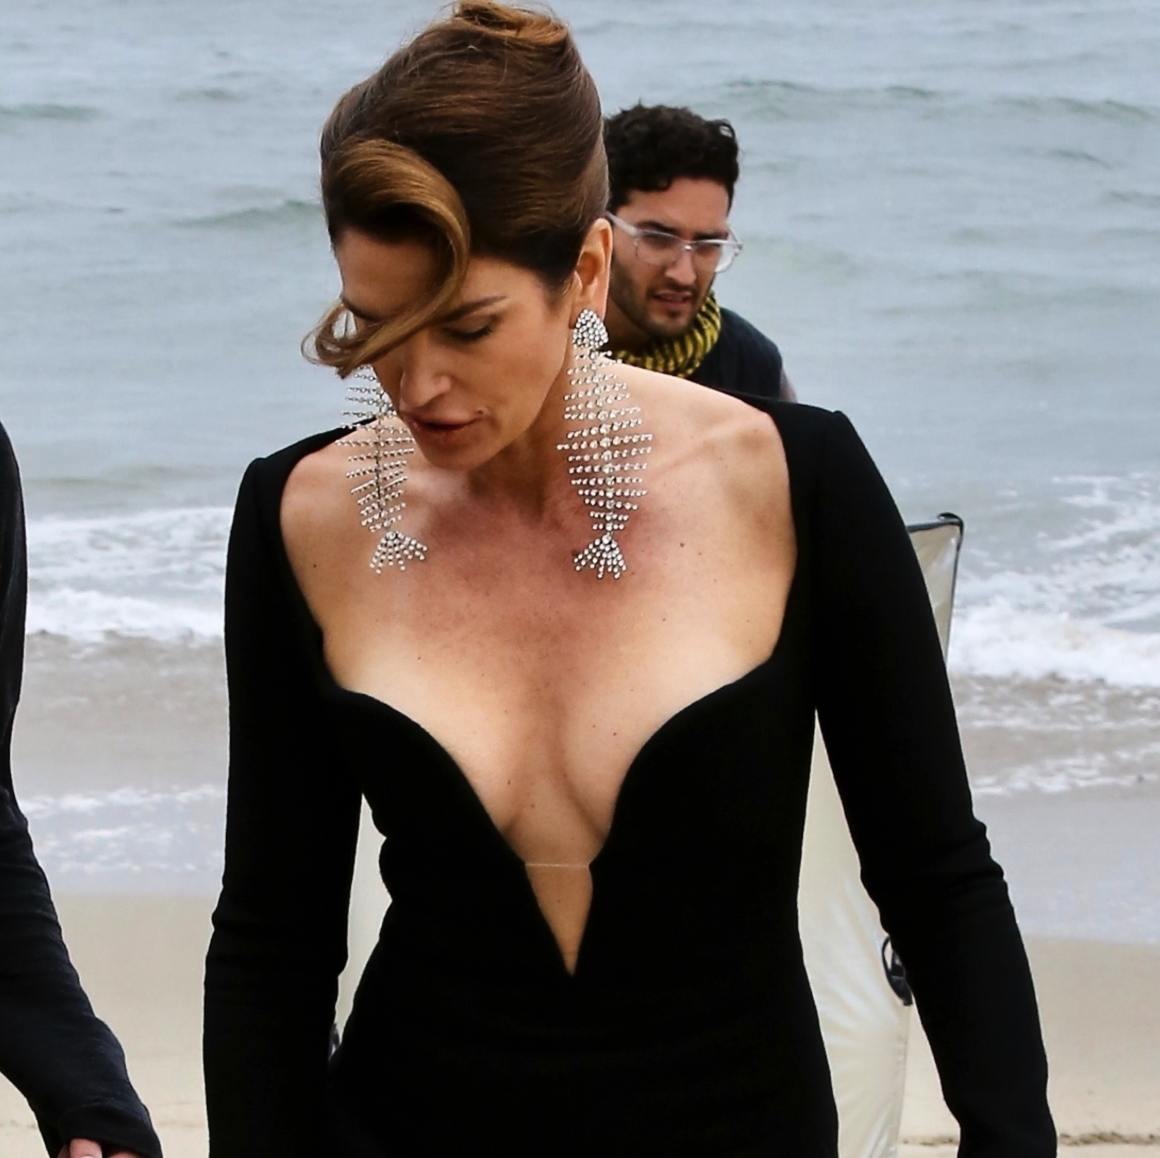 Cindy Crawford's 52-Year-Old Cleavage Is About to Spill Out of Her Low-Cut Dress [PICS]